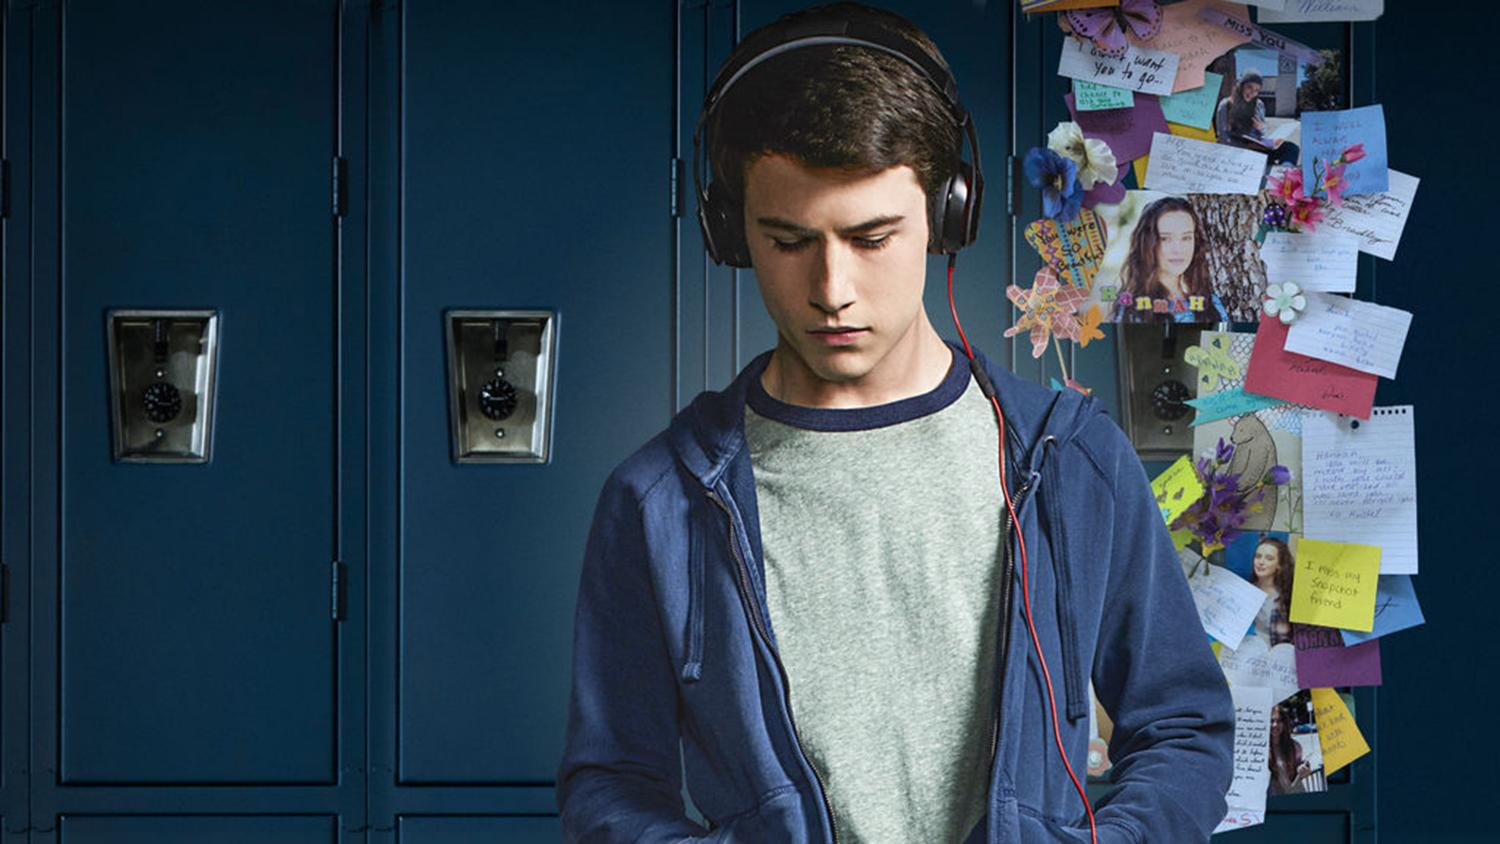 Dylan Minnette, who plays Clay, in 13 Reasons Why, listens to the recording tapes of his close friend Hannah Baker that committed suicide.